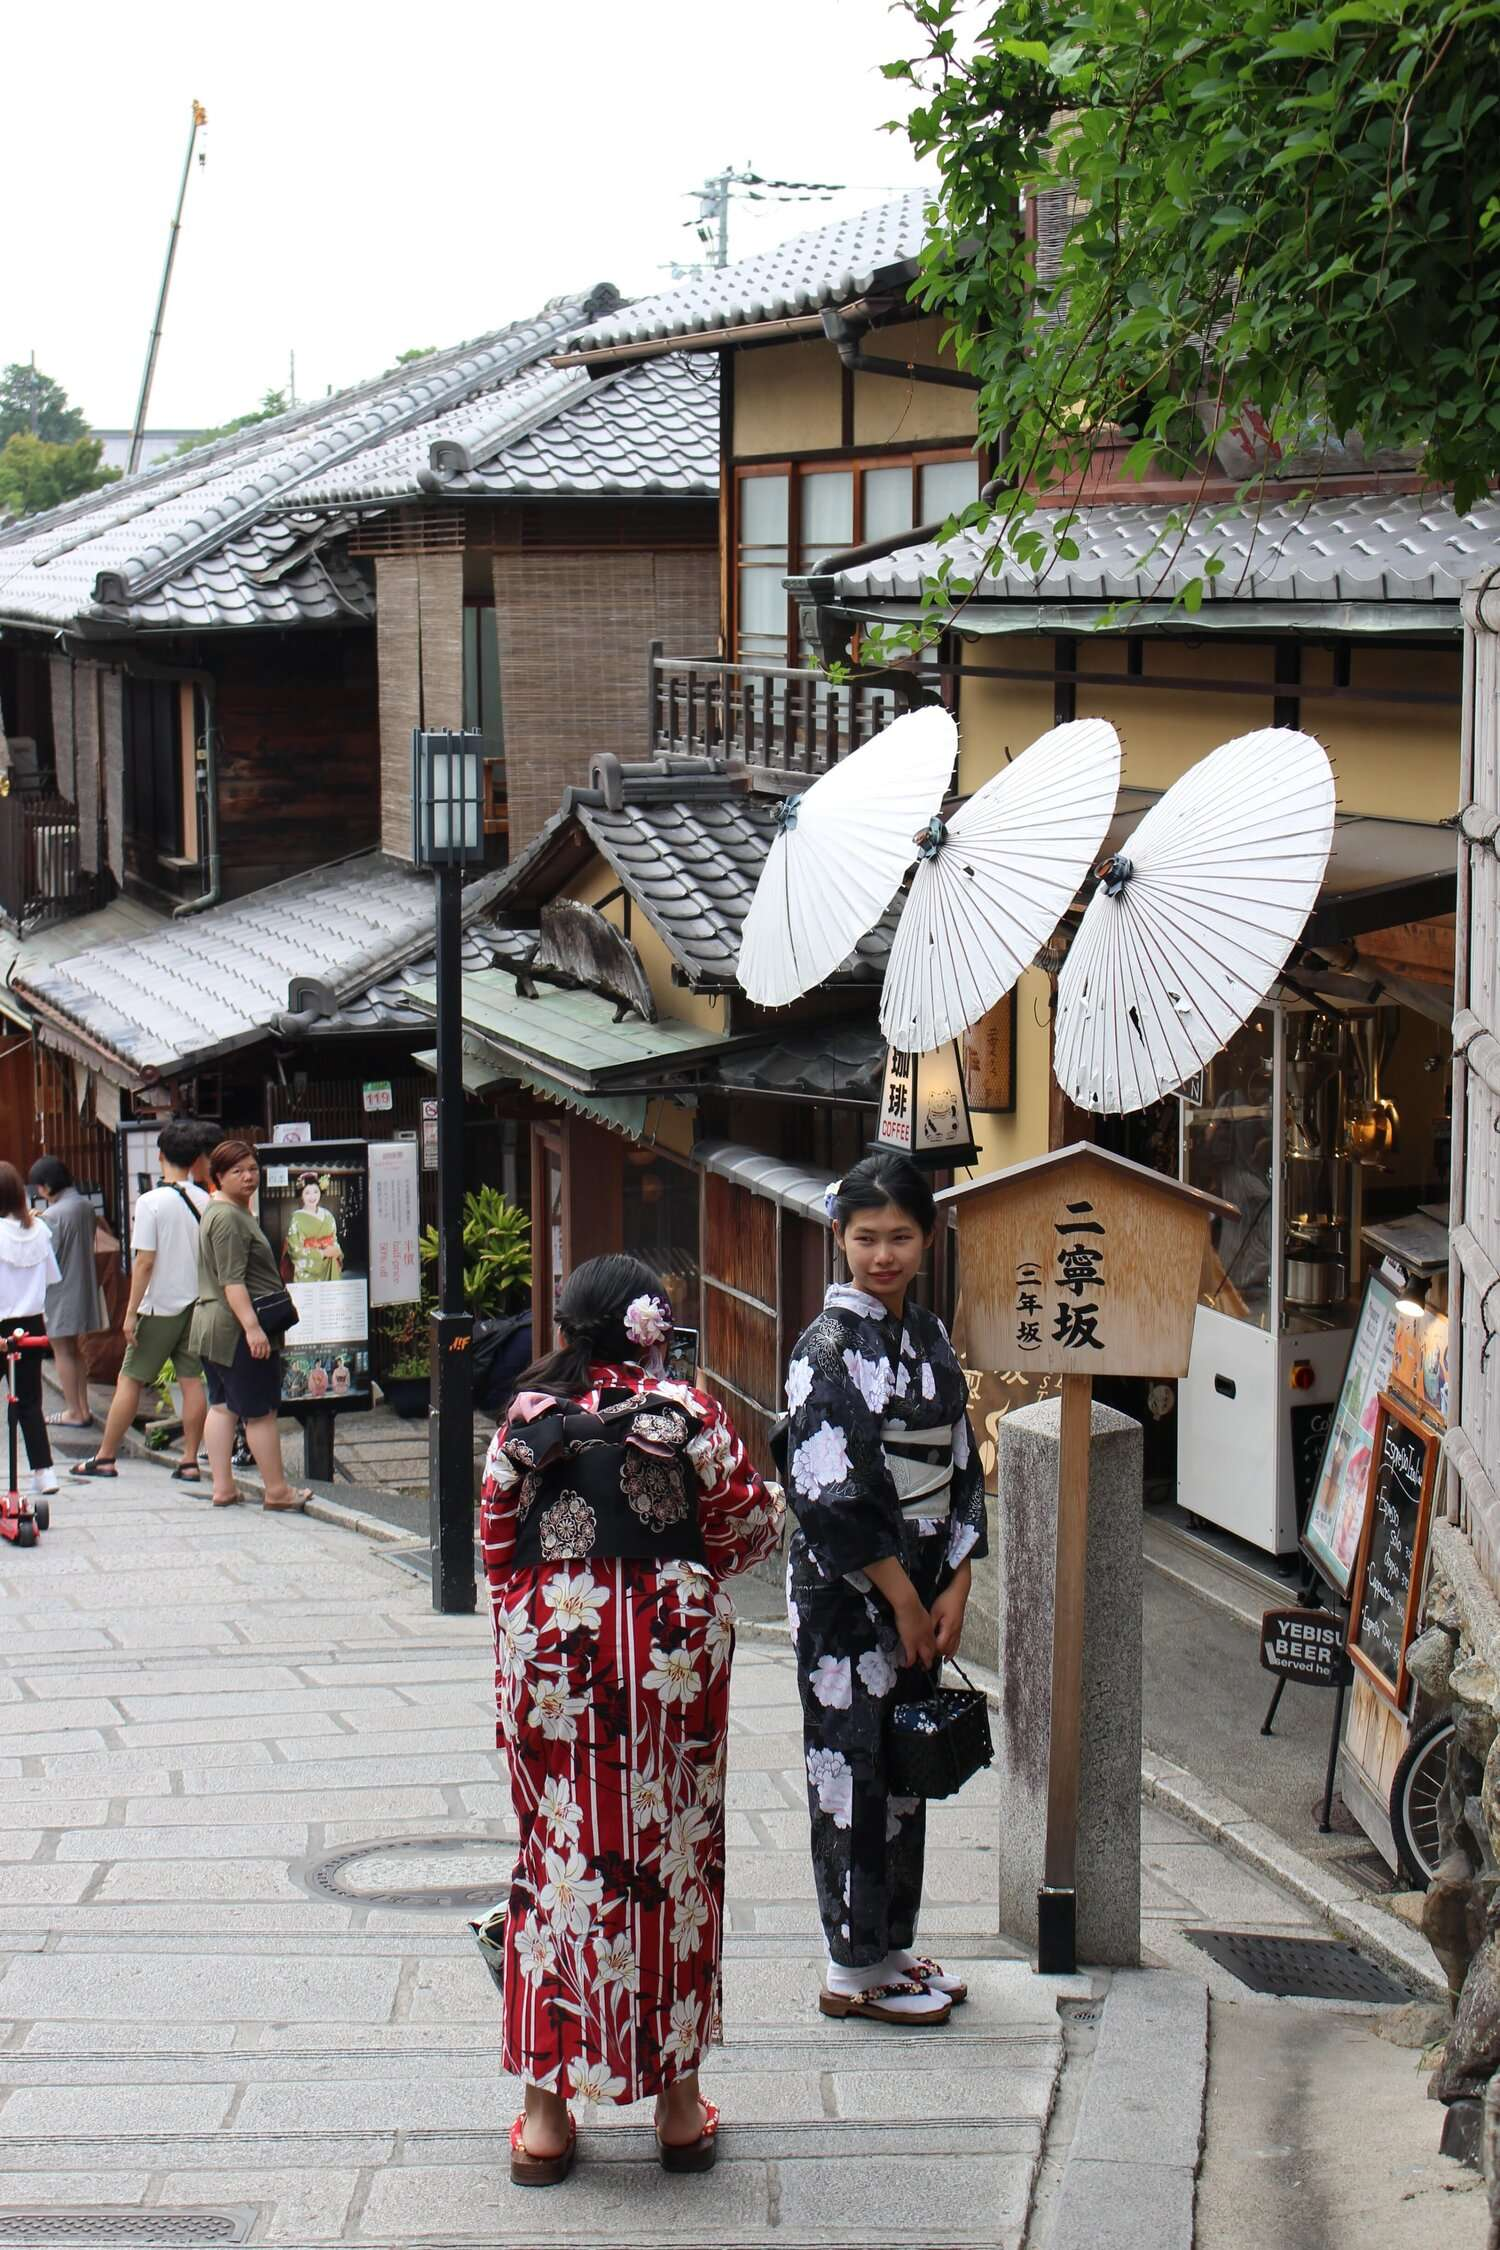 ladies wearing traditional Japanese kimonos walk down the streets in the Gion district of Kyoto